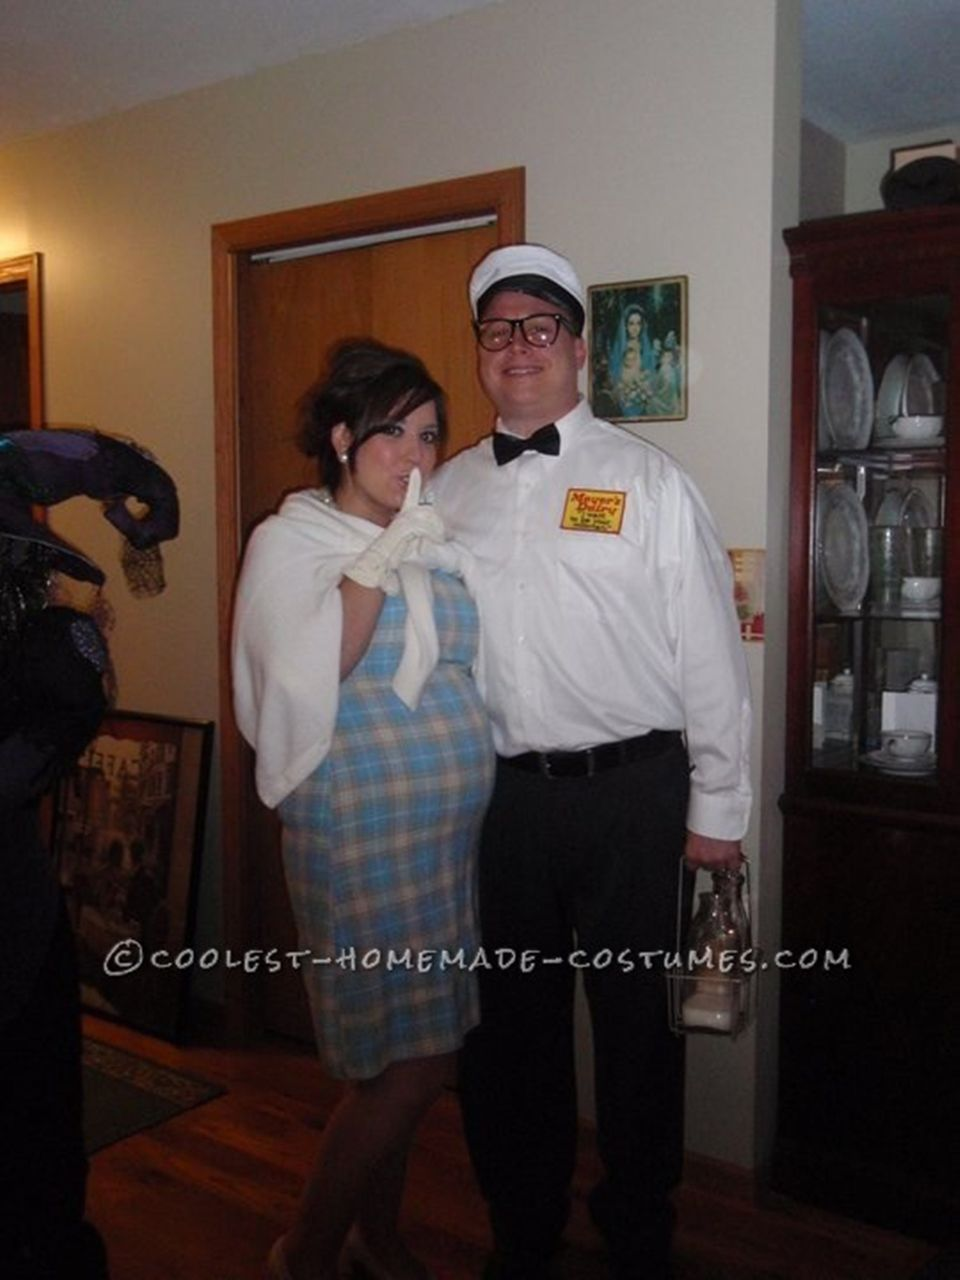 Funny Halloween Costumes For Pregnant Couples.33 Creative Halloween Costumes Just For Pregnant Women Huffpost Life